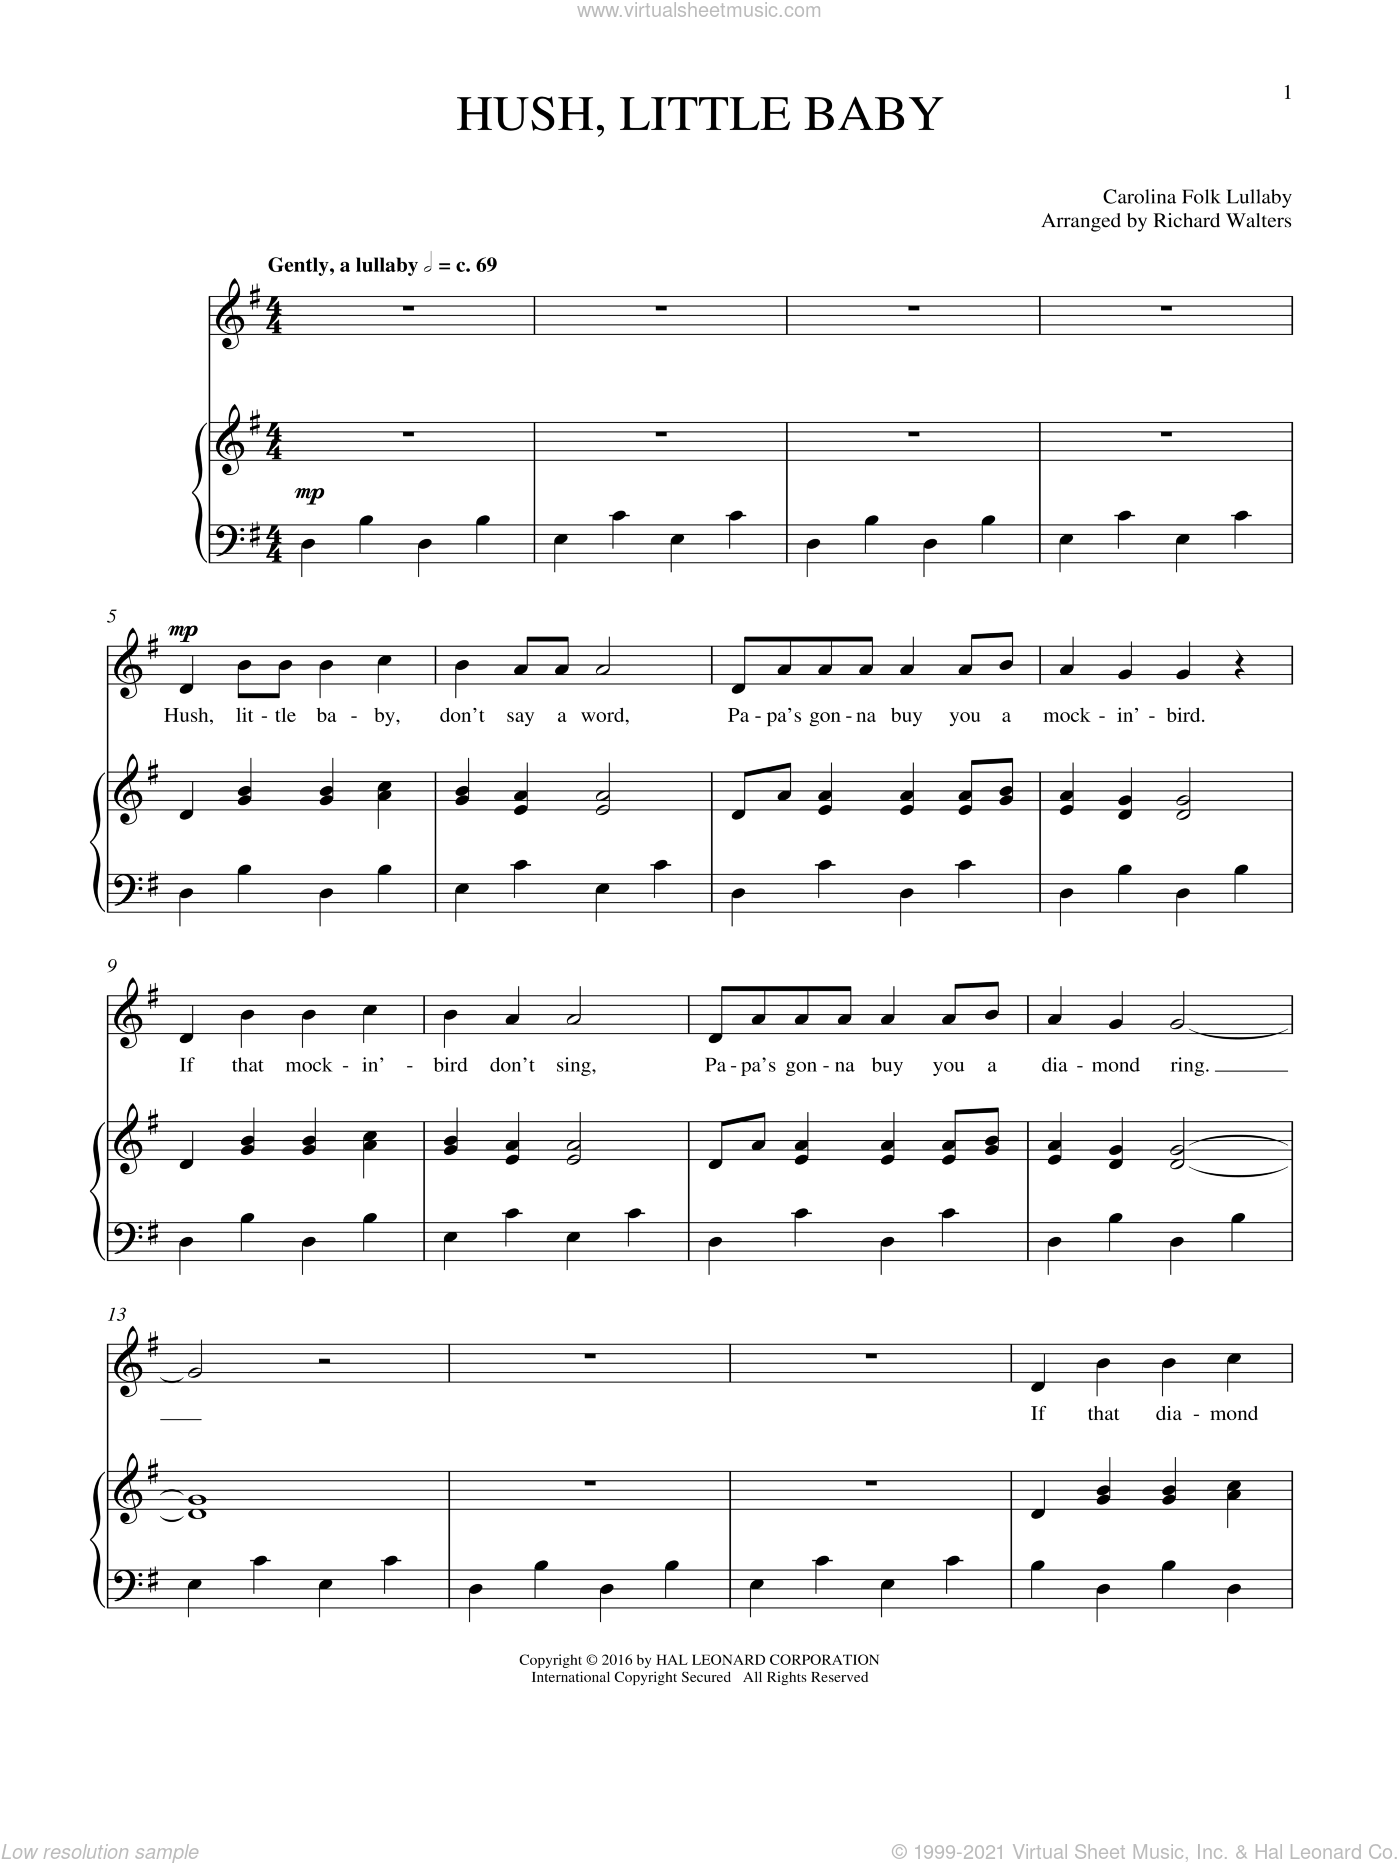 Hush, Little Baby sheet music for voice and piano by Carolina Folk Lullaby. Score Image Preview.